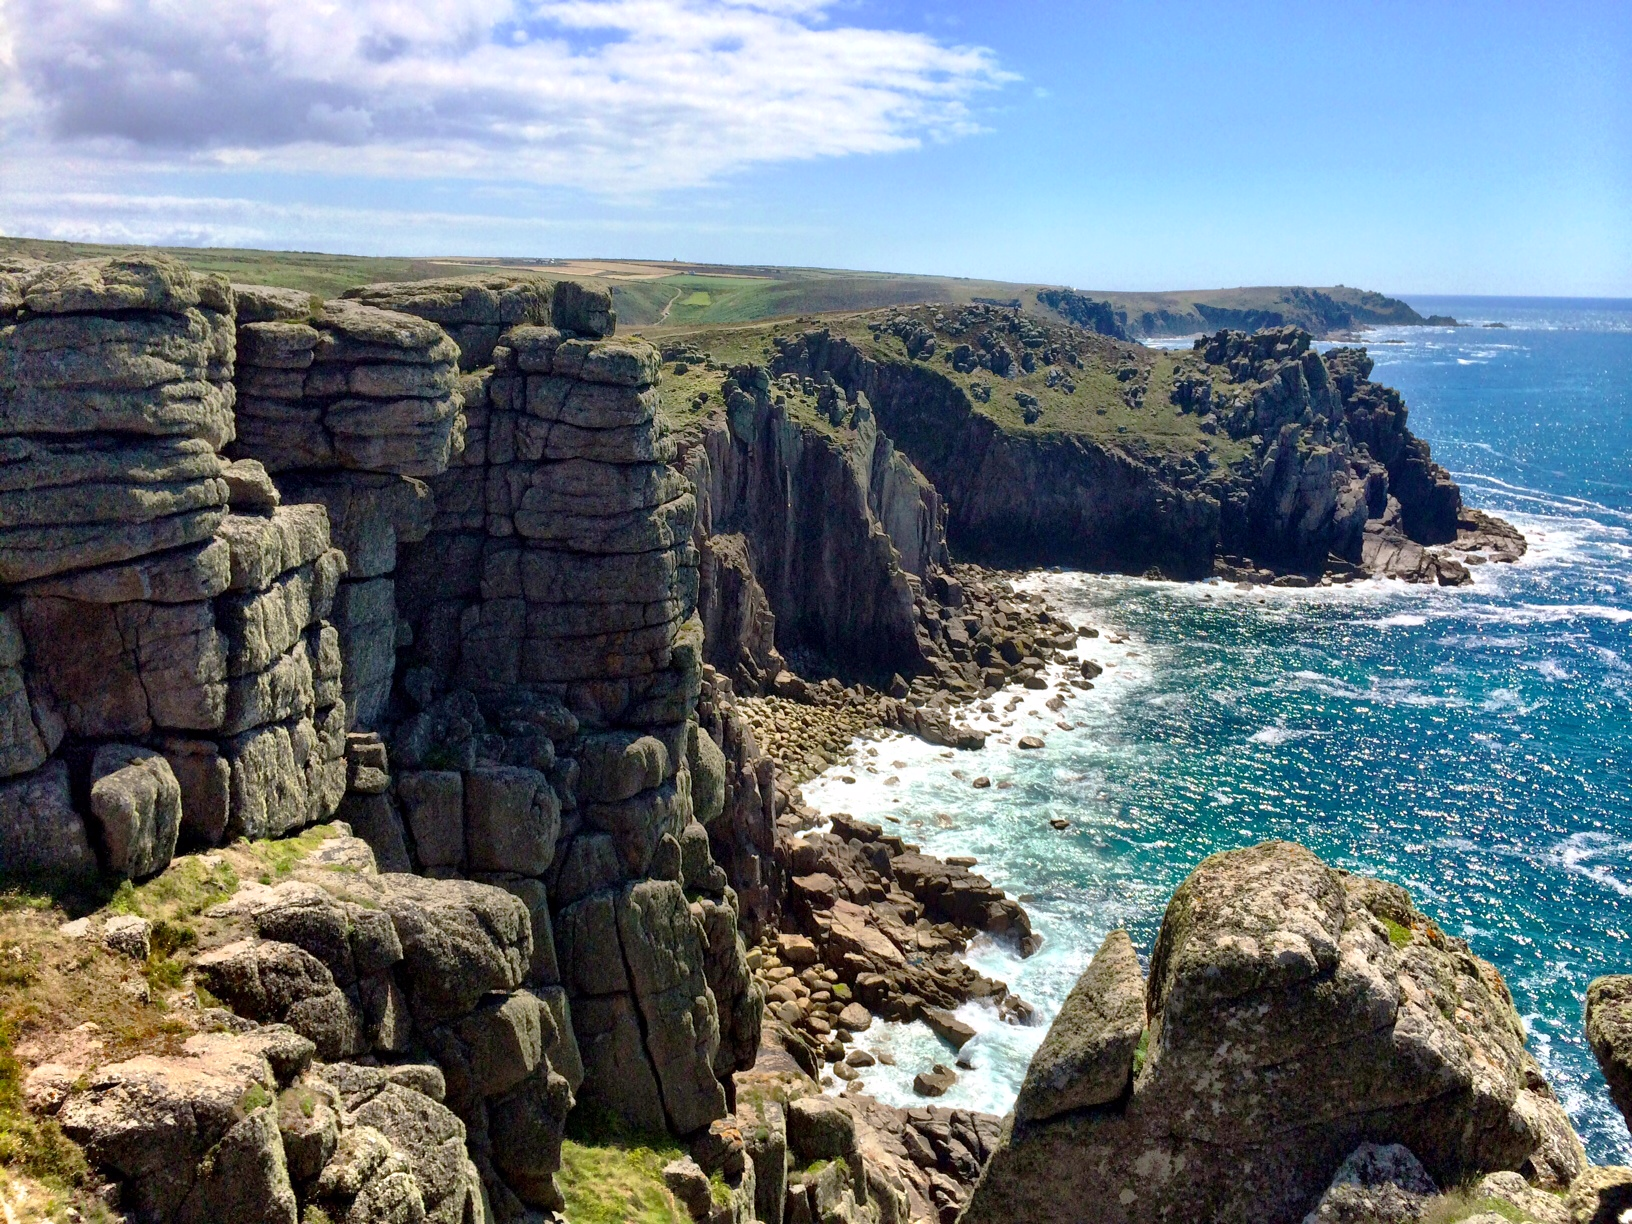 South West Coast Path – Sennen Cove to Porthcurno and Cross Country